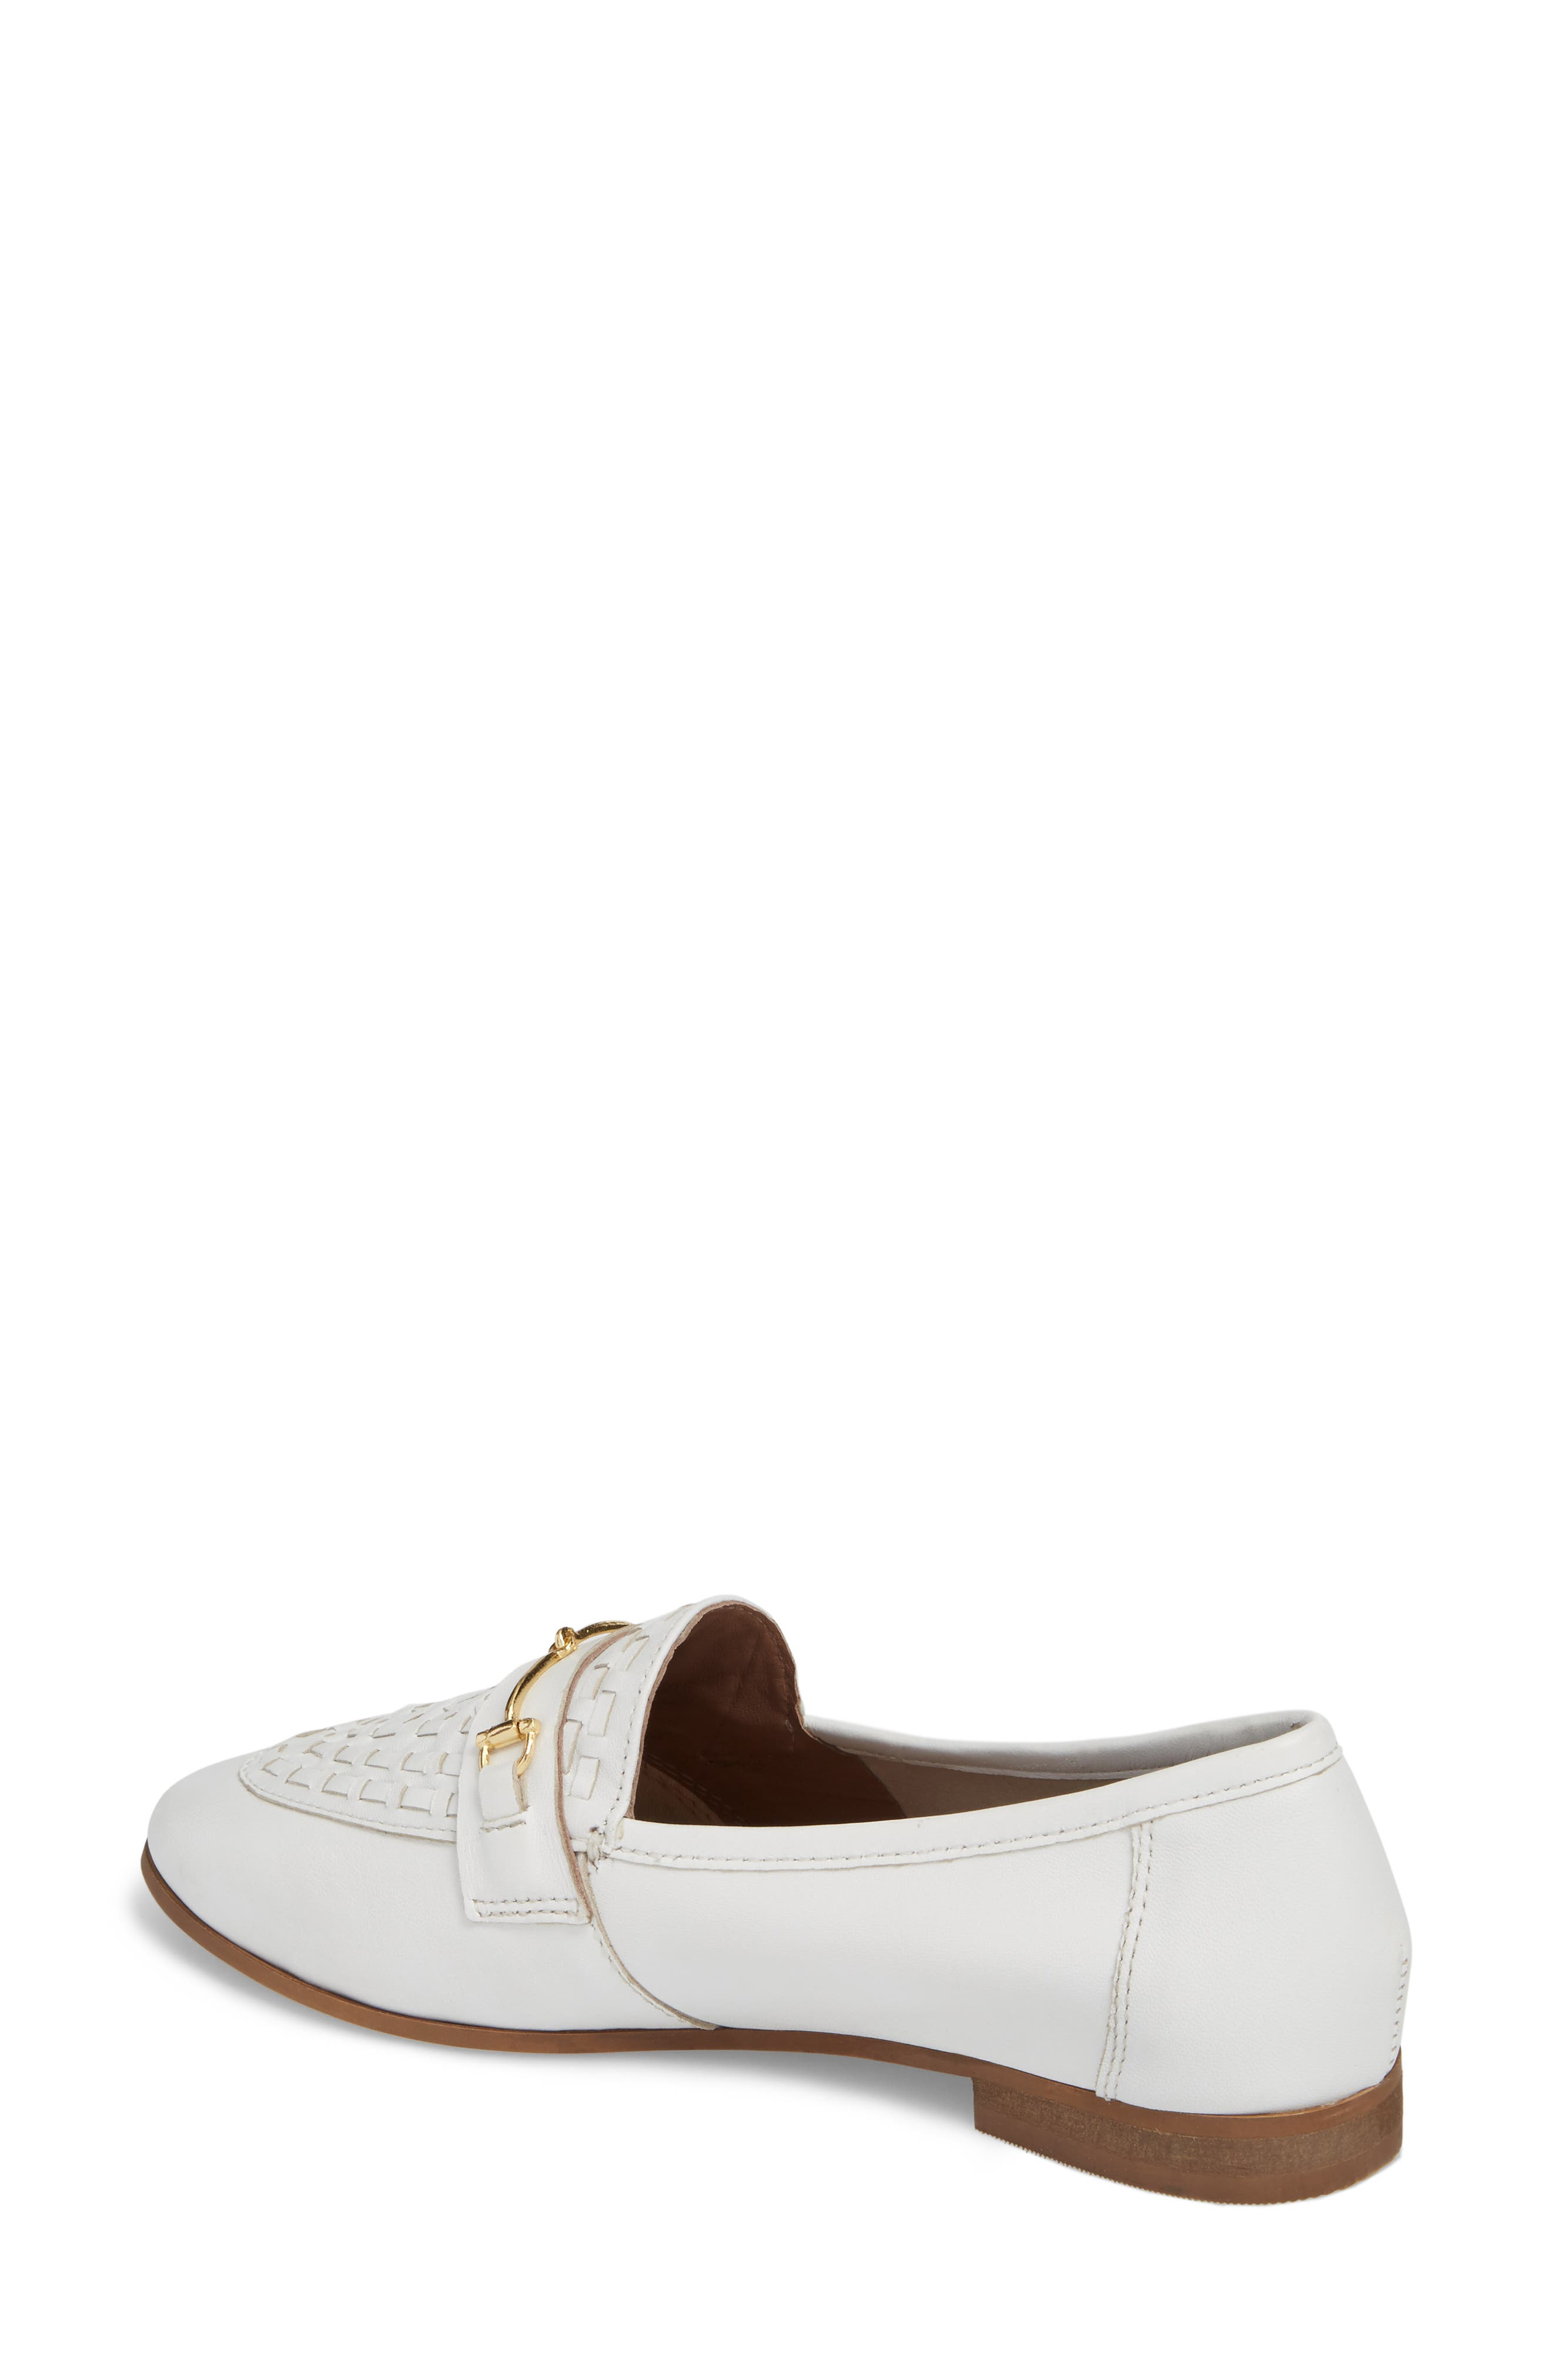 Kingley Woven Loafer,                             Alternate thumbnail 2, color,                             WHITE